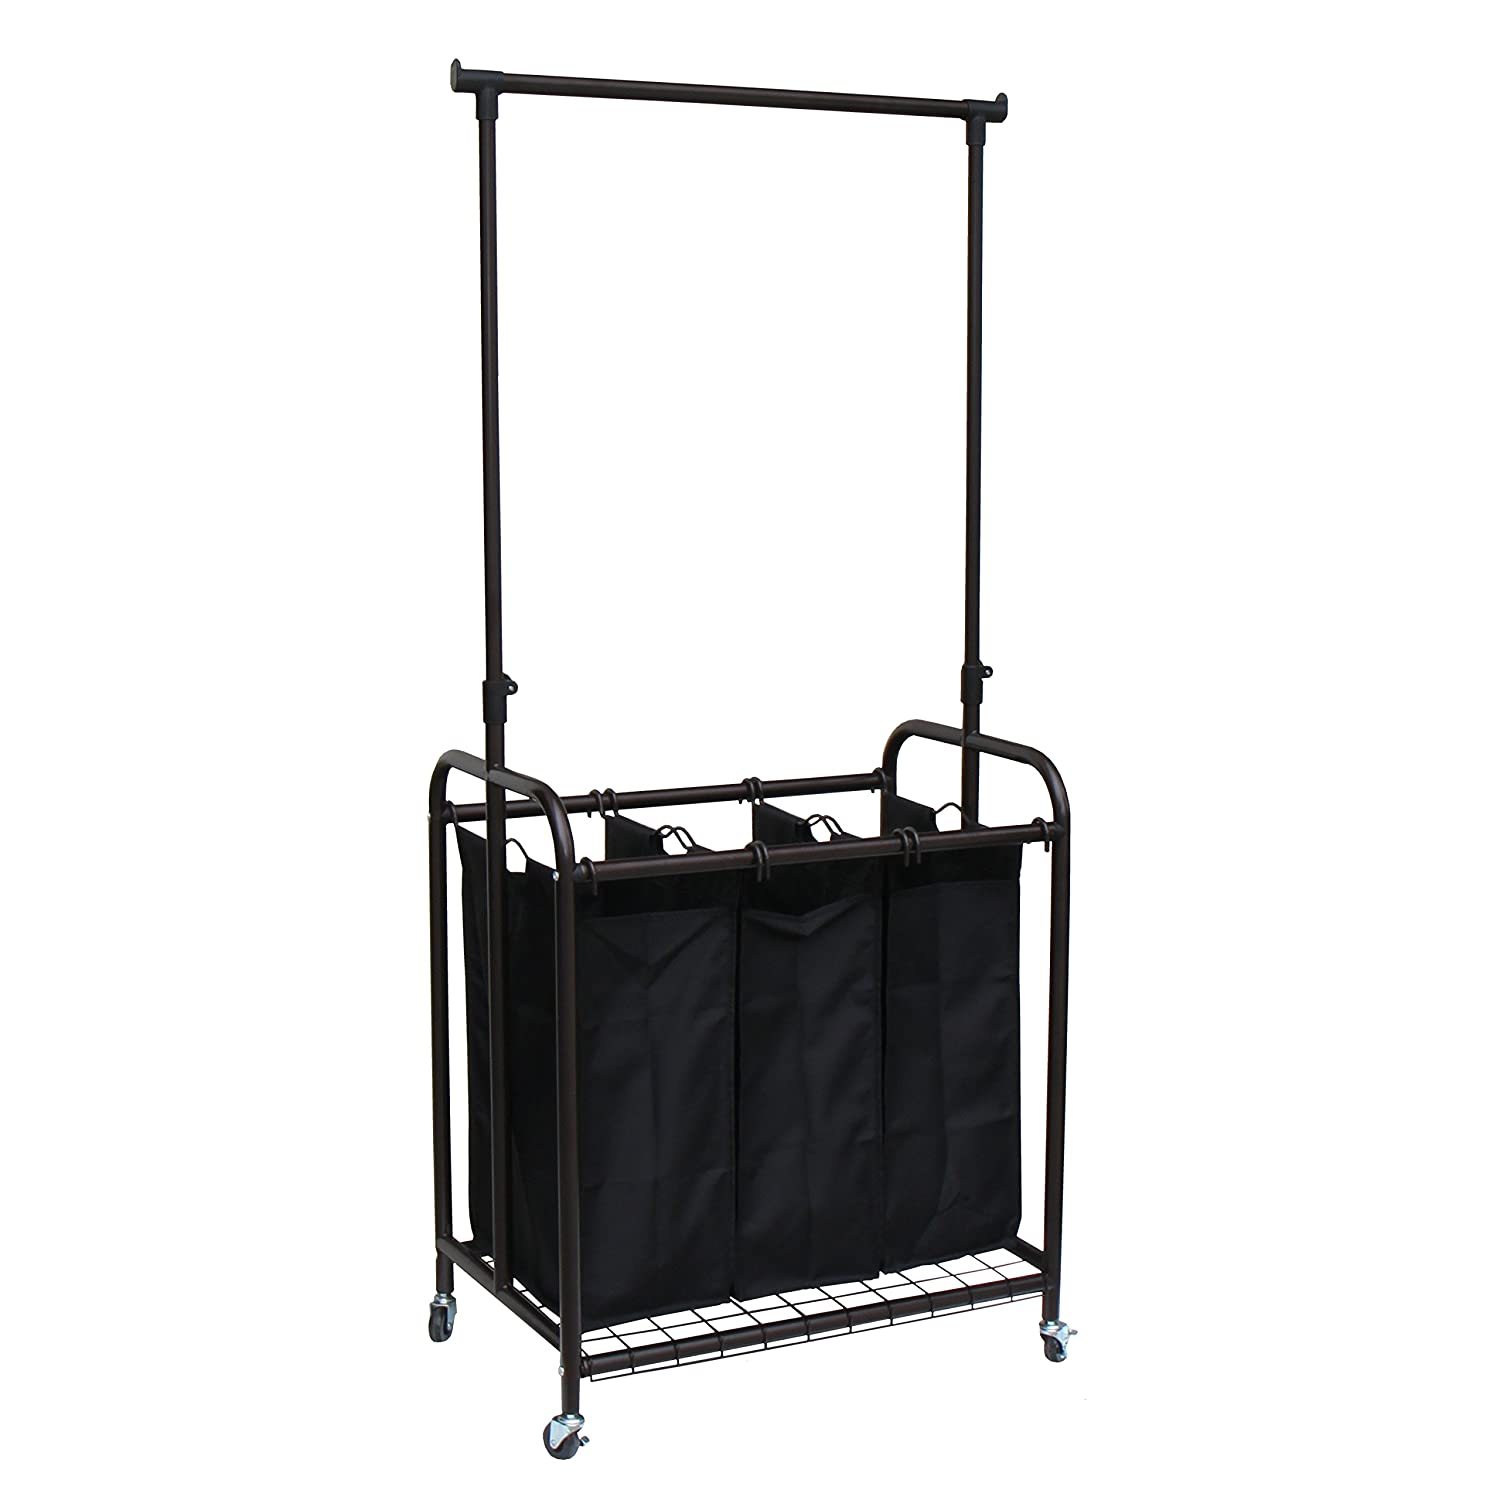 Laundry Hanging Bar Amazoncom Oceanstar 3 Bag Rolling Laundry Sorter With Adjustable